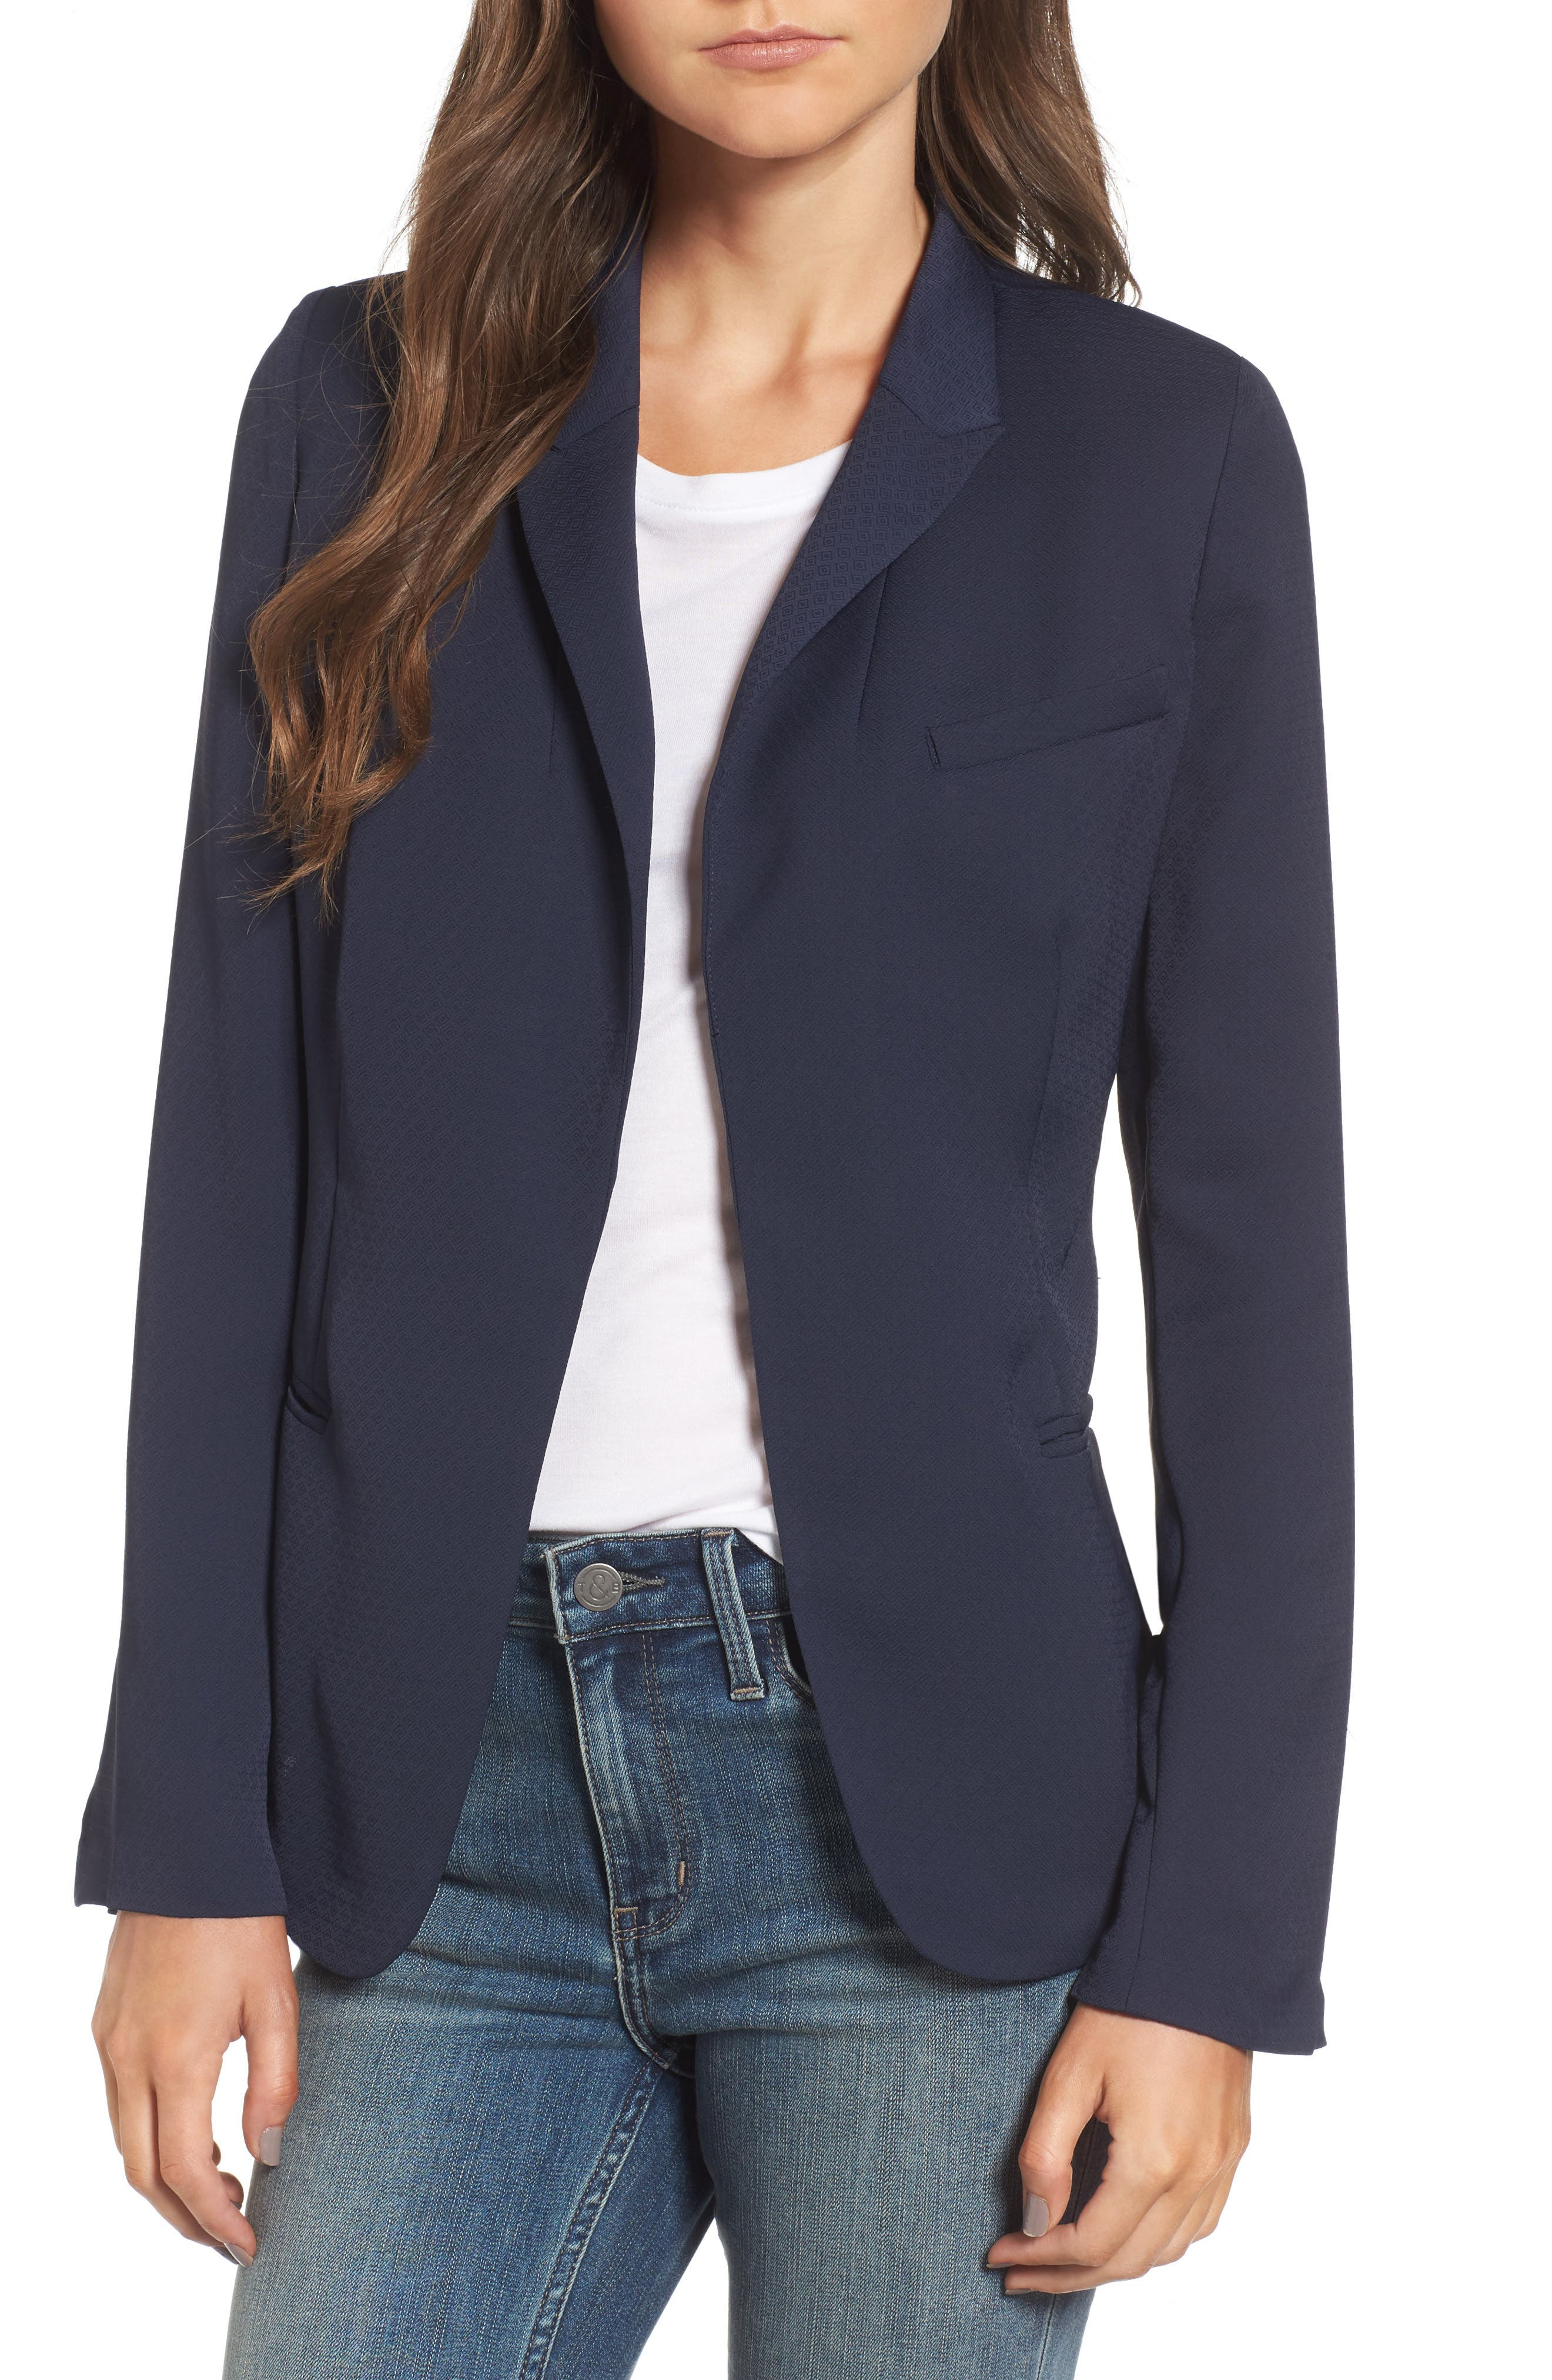 Treasure & Bond Draped Jacquard Blazer